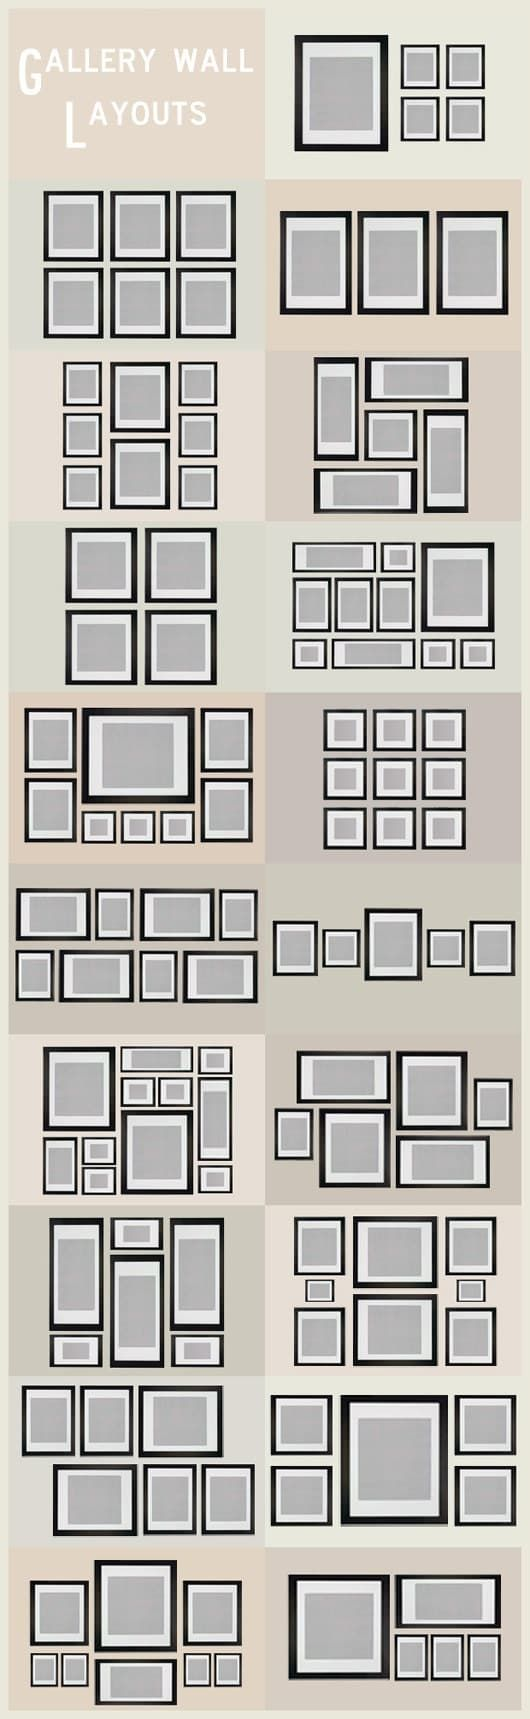 These Diagrams Are Everything You Need To Decorate Your Home  Interior design cheat sheets FTW.